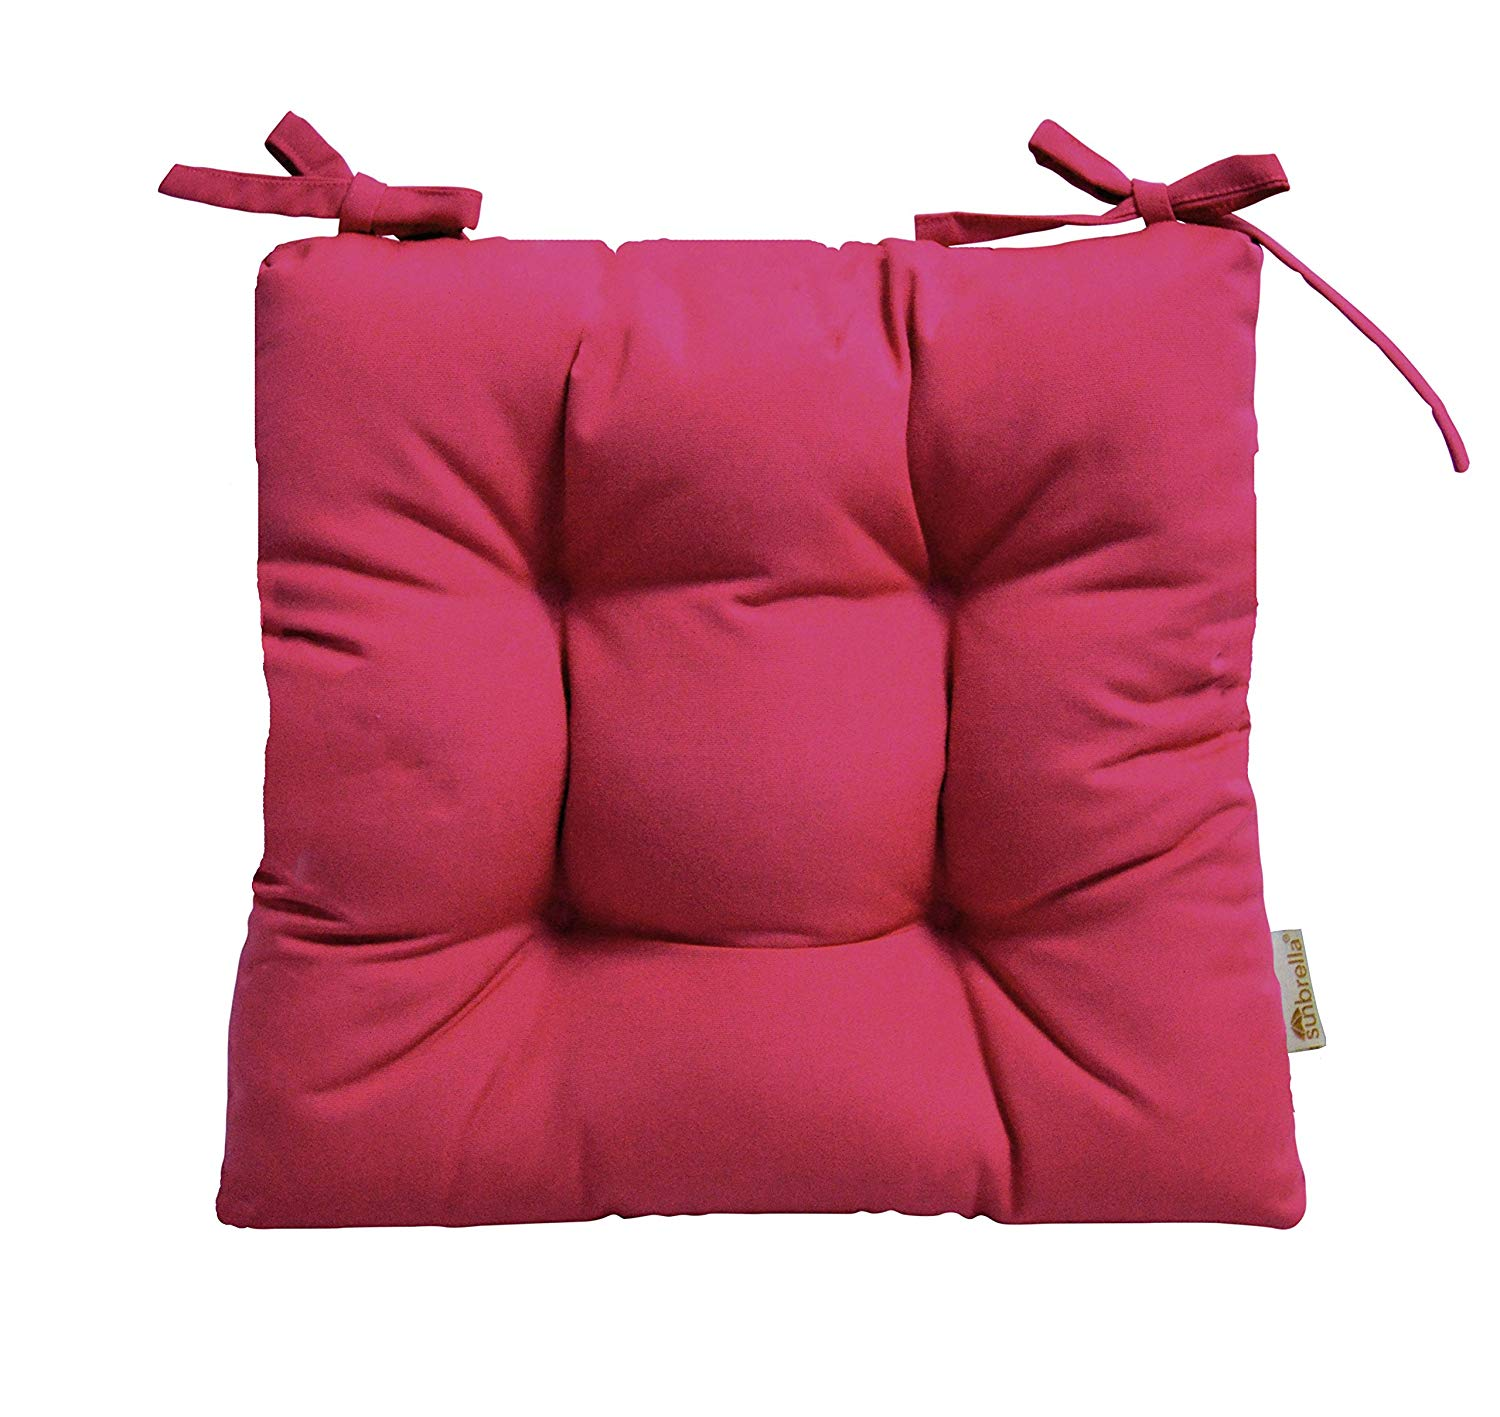 """RSH Décor Indoor/Outdoor Sunbrella Canvas Hot Pink Tufted Seat Cushion with Ties for Dining/Patio Chairs - Choose Size (18"""" x 18"""")"""